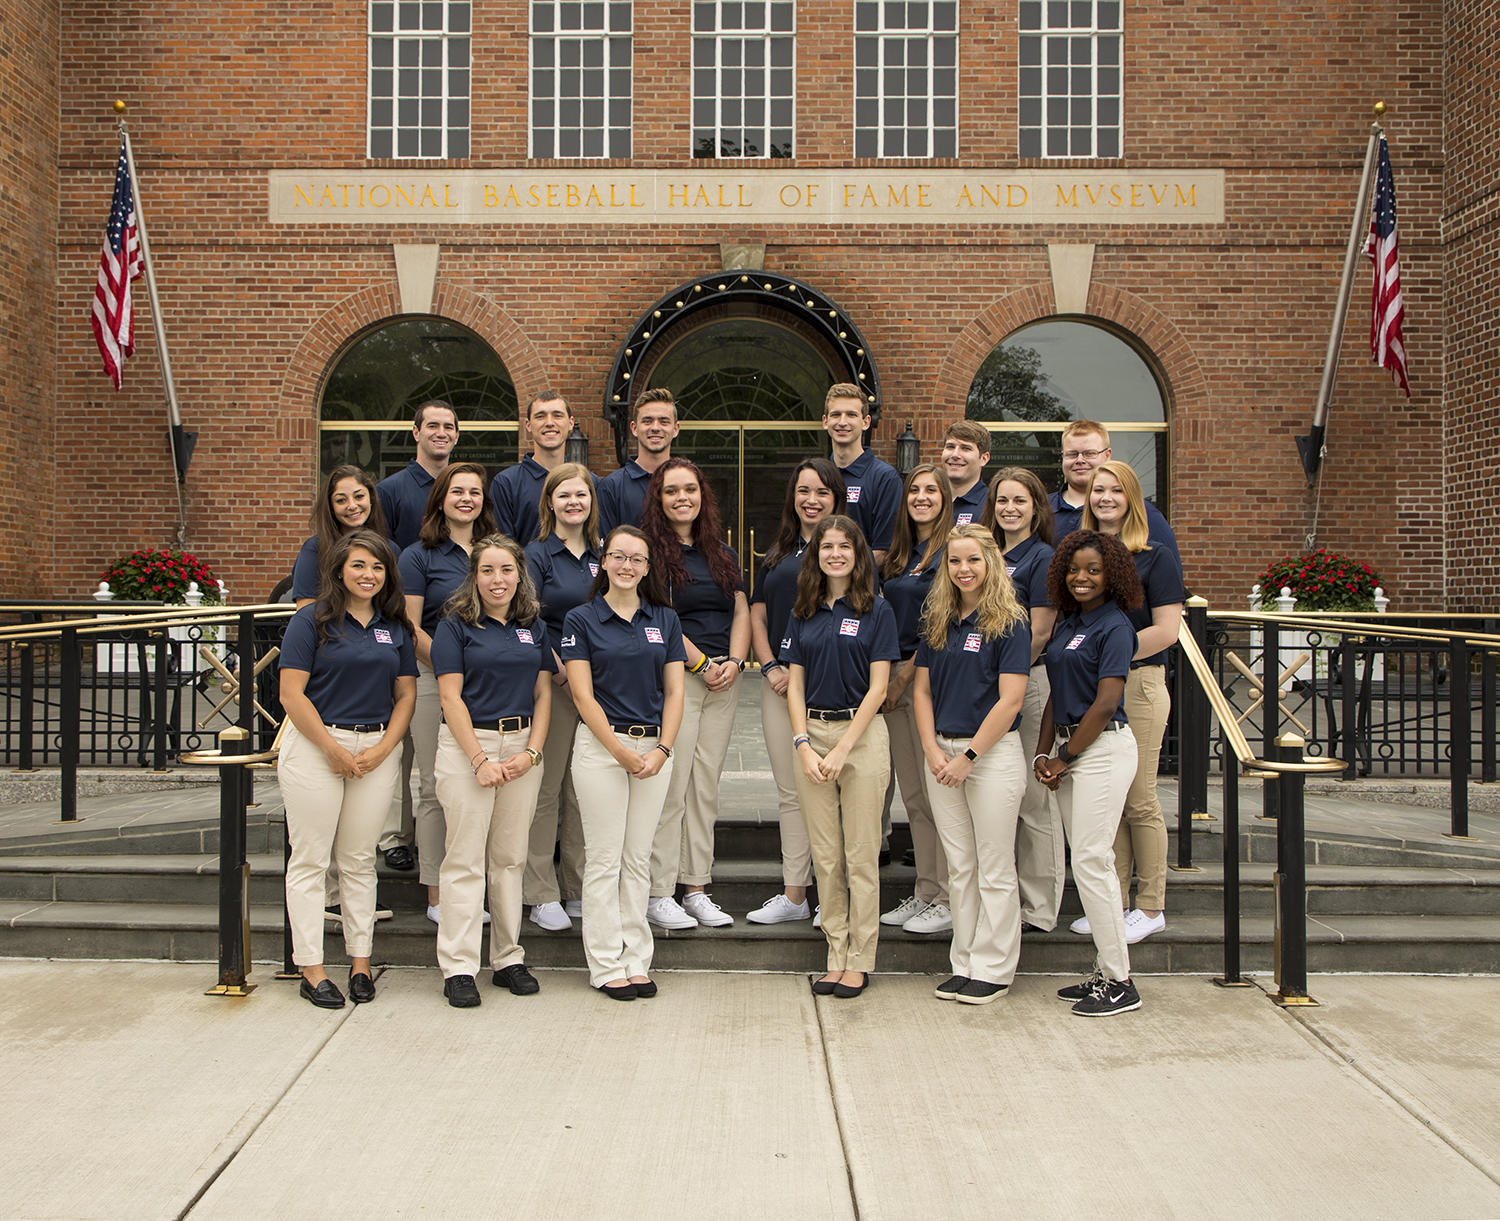 The 2017 class of Frank and Peggy Steele Interns is pictured above. Top row, from left to right: Kyle Grozen, Charles Barchett, Justin Hendry, Samuel Dreyfuss, Michael Fishbach, Eldon Yeakel; Middle row, from left to right: Erica Wells, Cady Lowery, Hannah Mahnken, Emily Cooper, Emily Perdue, Madeline Chessario, Hanna Soltys, Cassidy Murray; bottom row, from left to right: Meghan Anderson, Samantha Selikoff, Rebecca Finnigan, Elizabeth Muratore, Addison Skaggs, Cagney Irving. (Milo Stewart Jr. / National Baseball Hall of Fame and Museum)